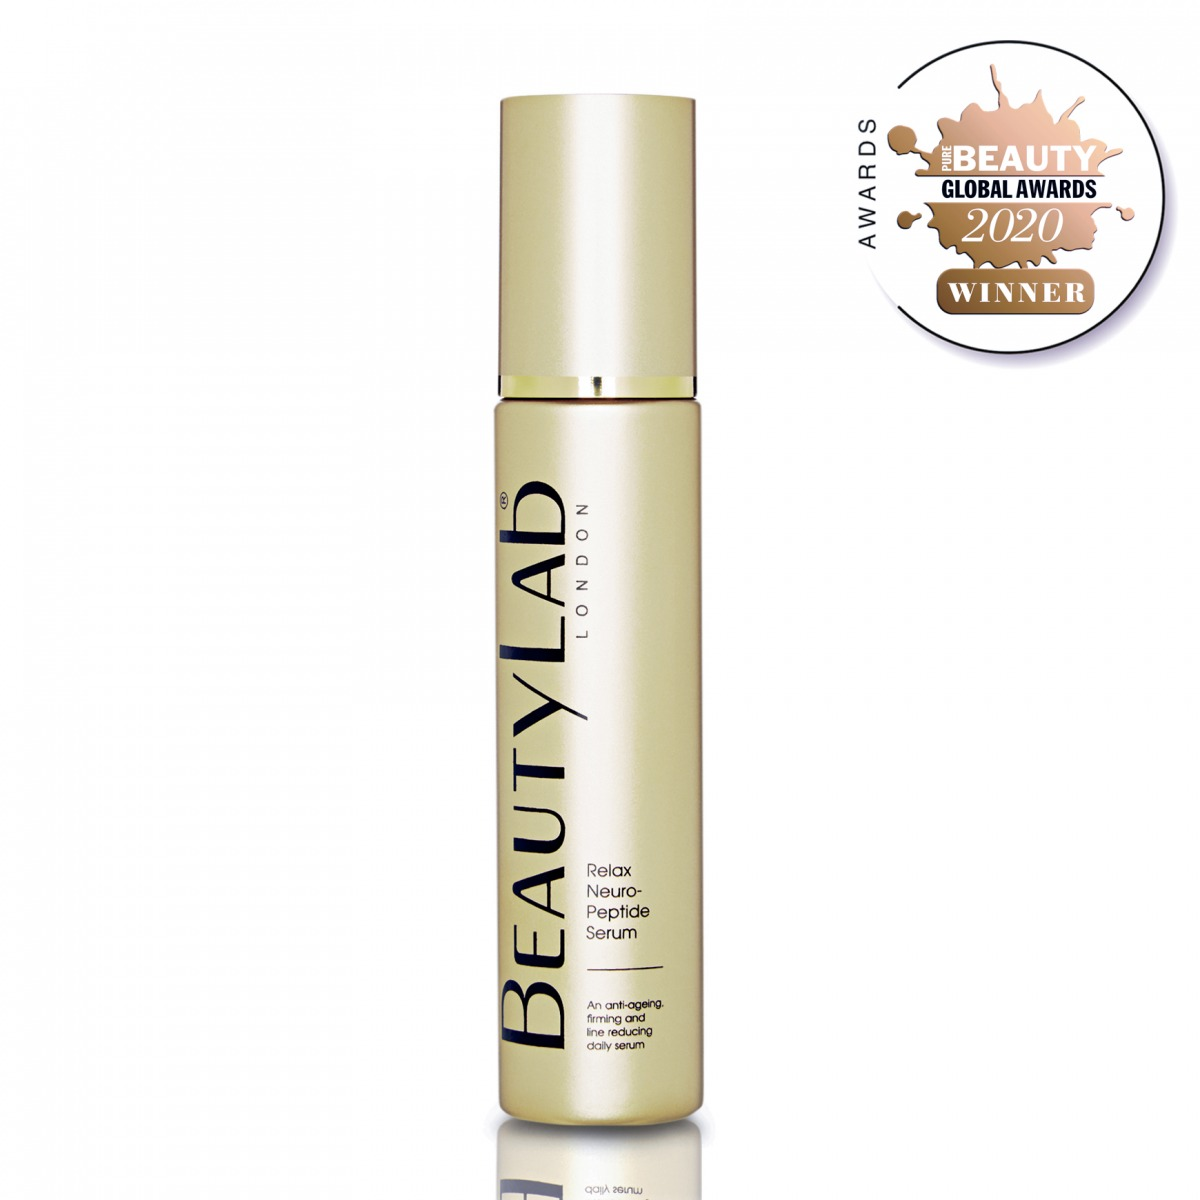 Anti-age Relax neuropeptide serum 2020 winner pure beauty awards